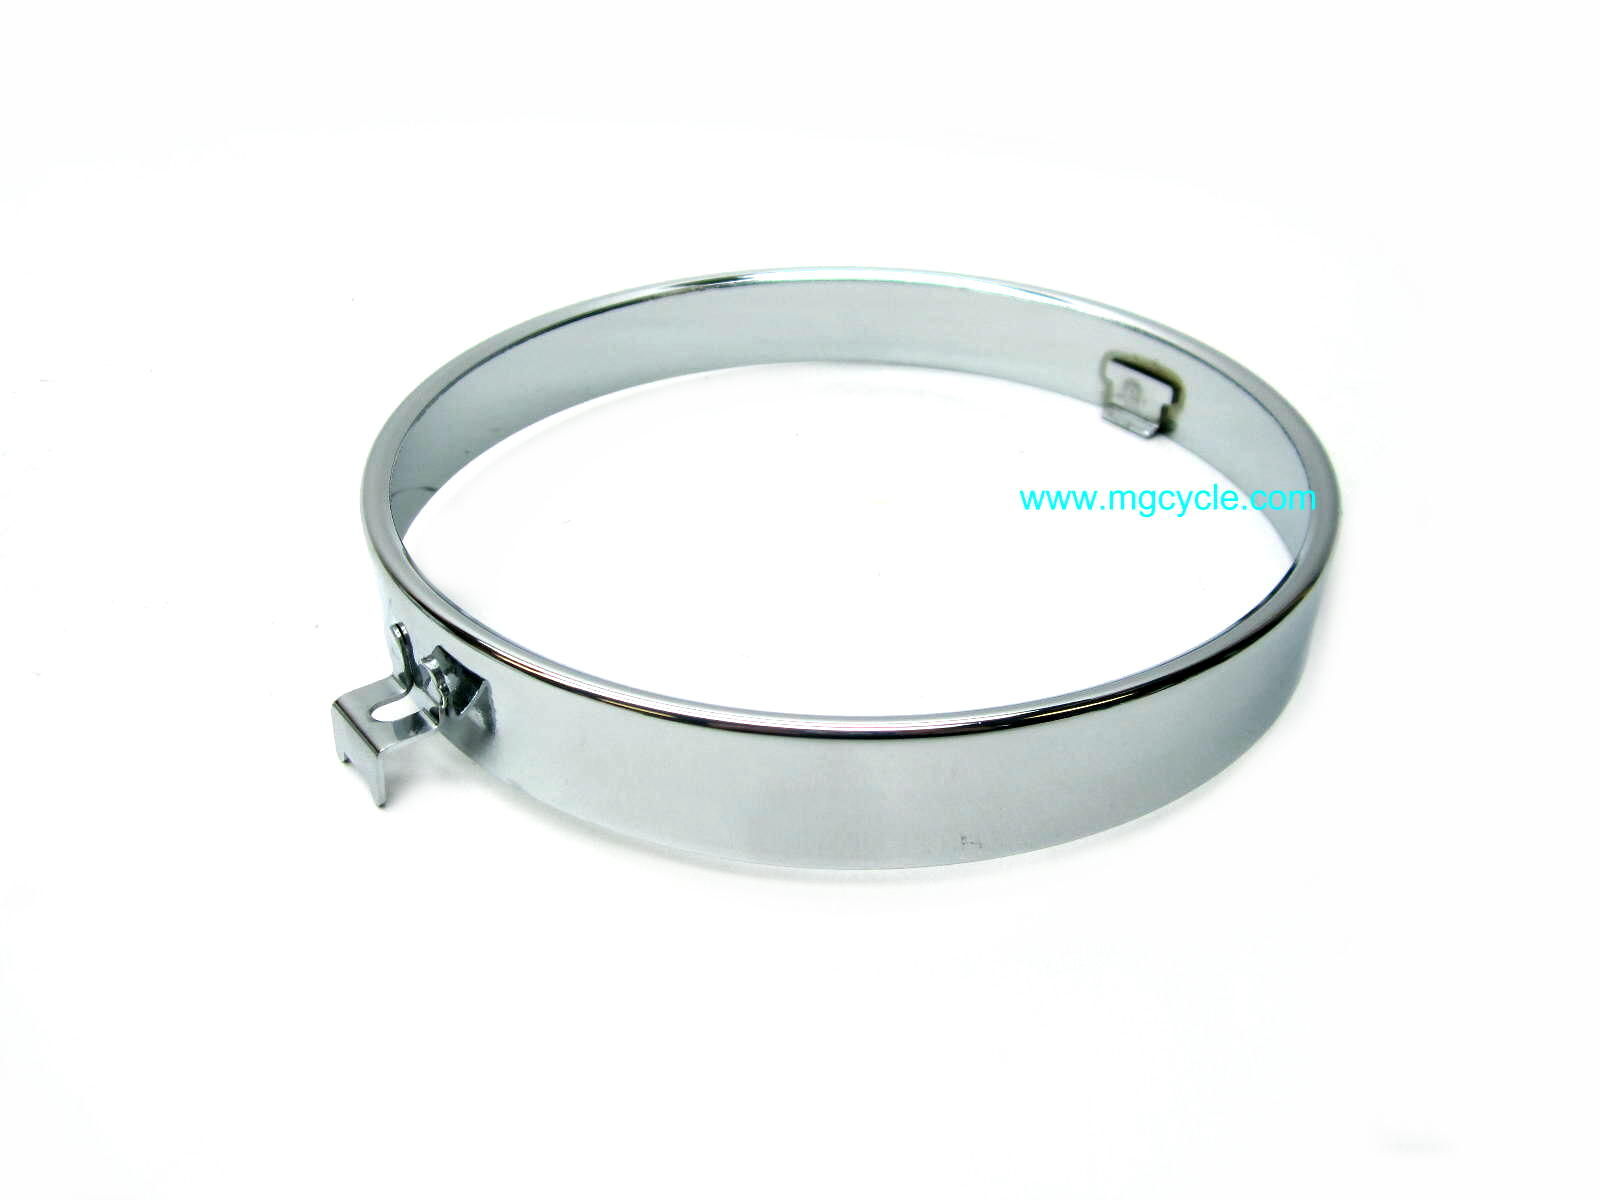 headlight ring: Eldorado, Ambassador, V700